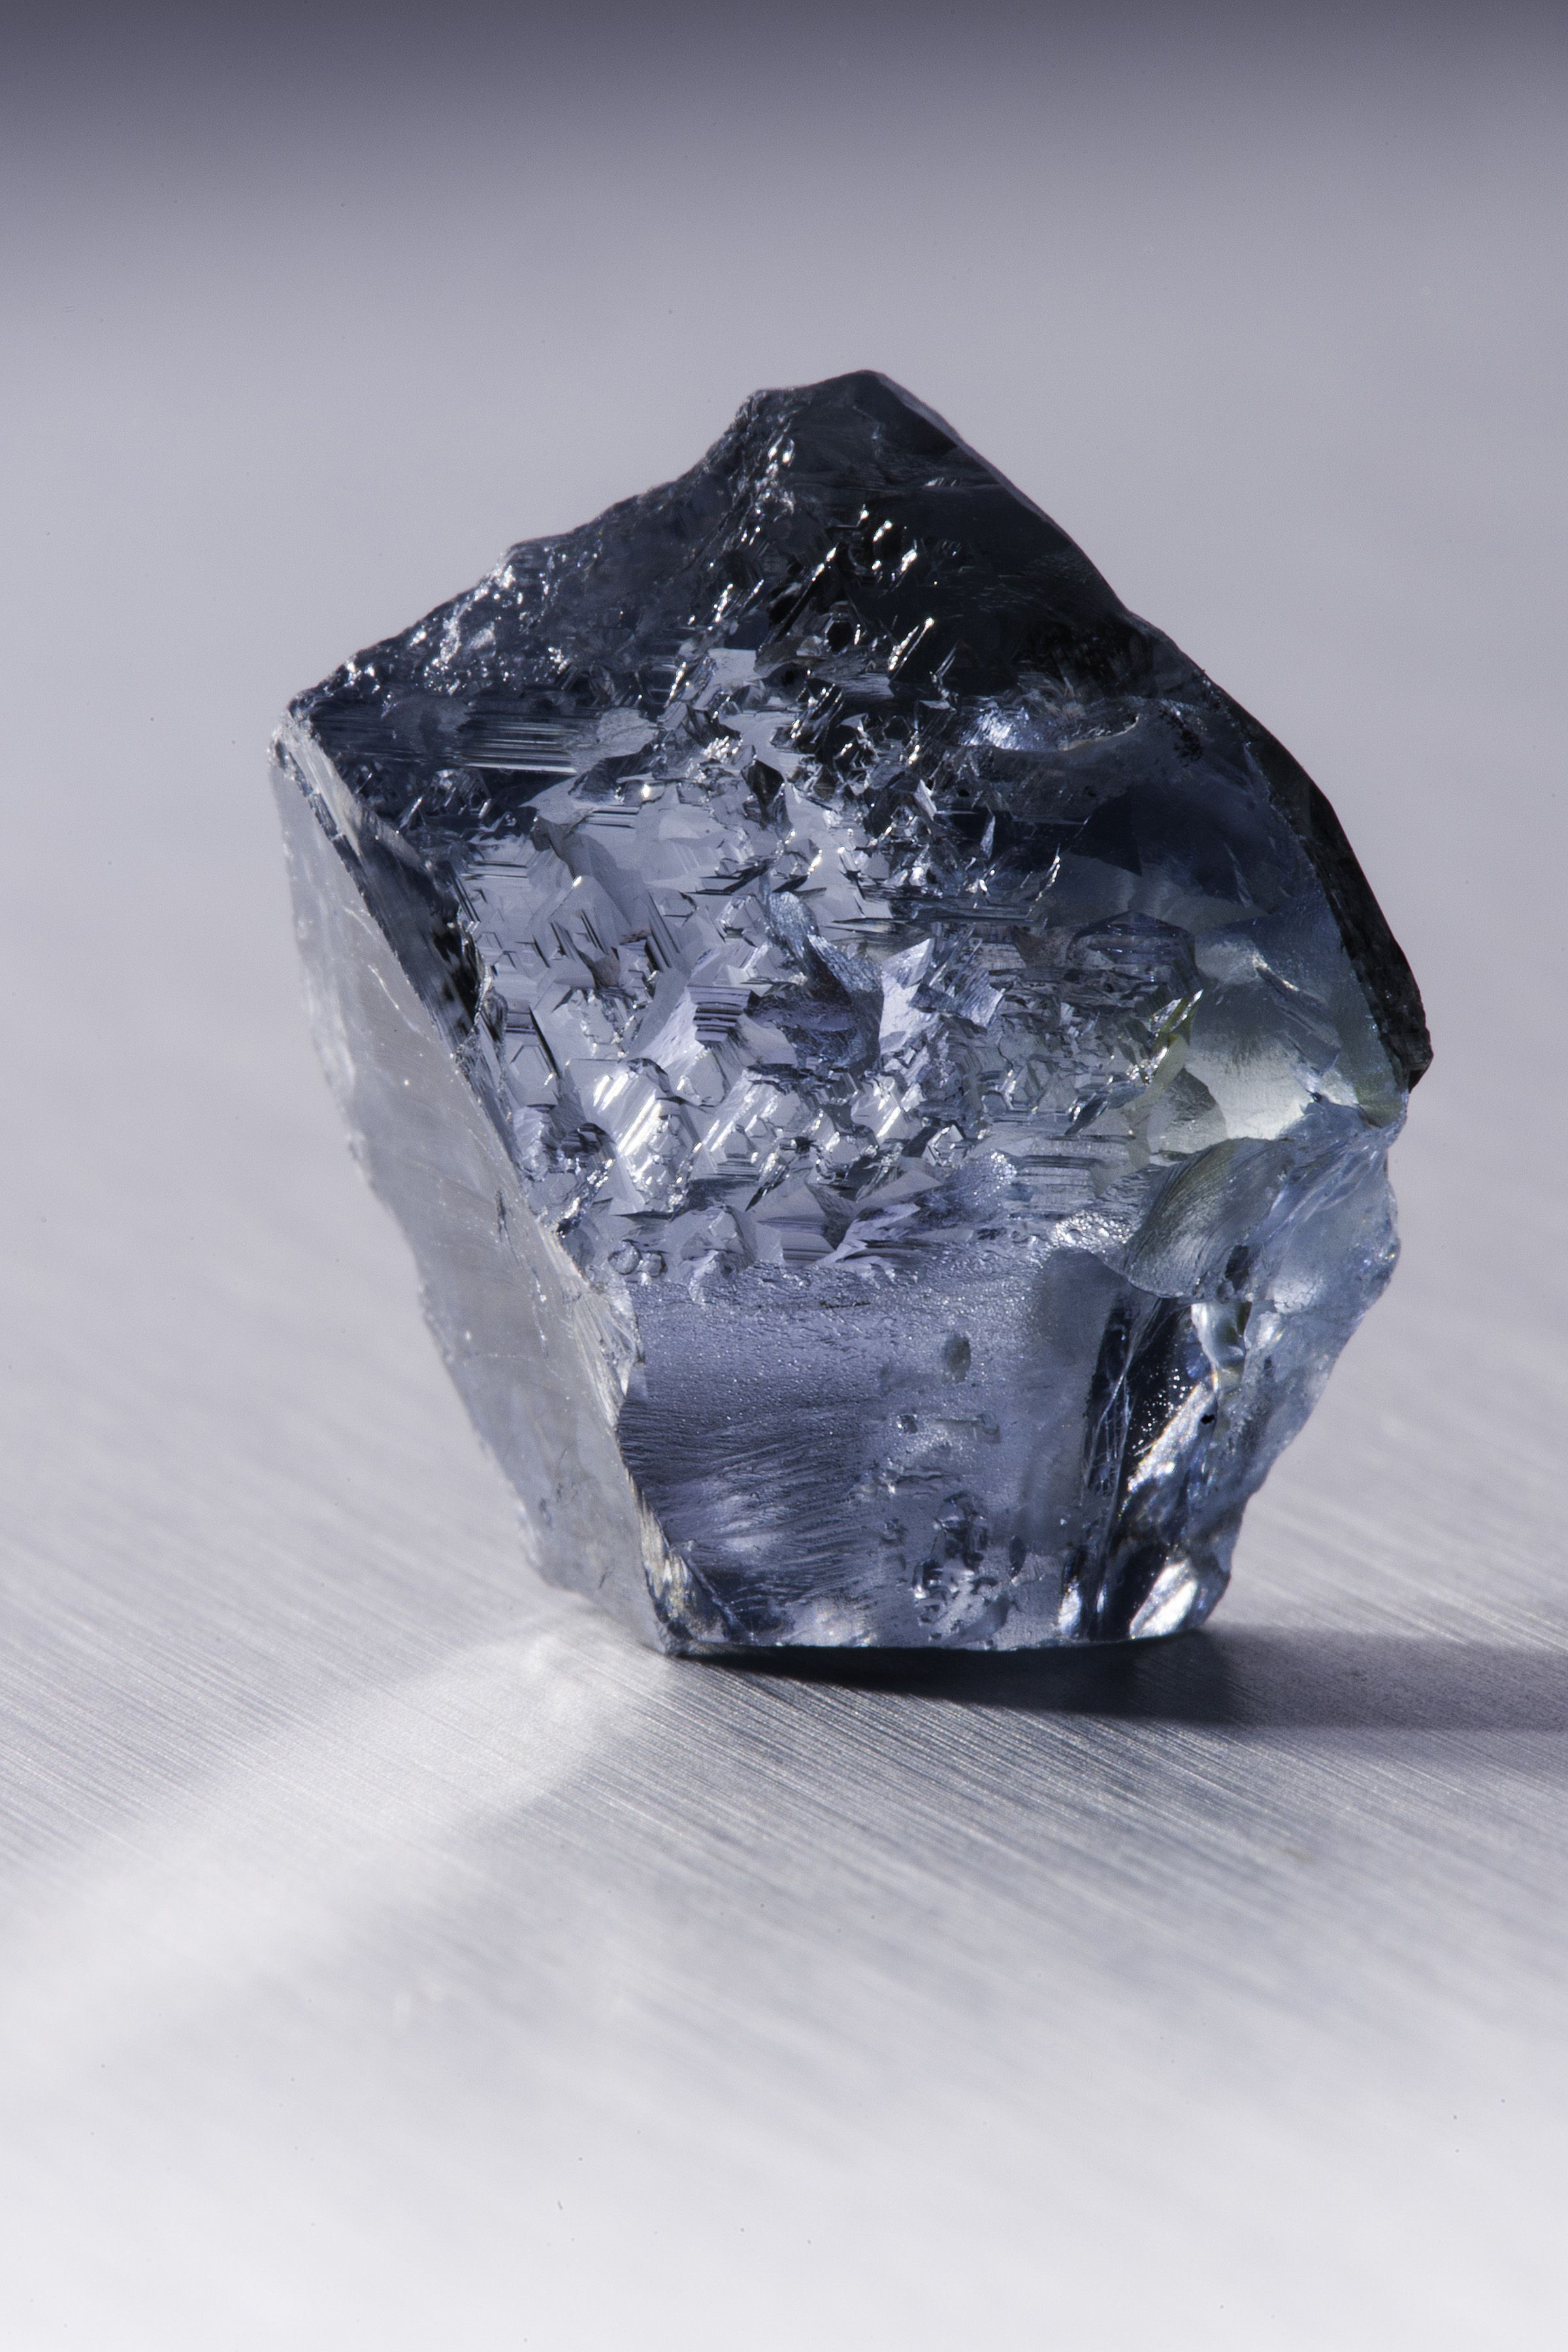 blue diamond // to match your eyes Stones and crystals